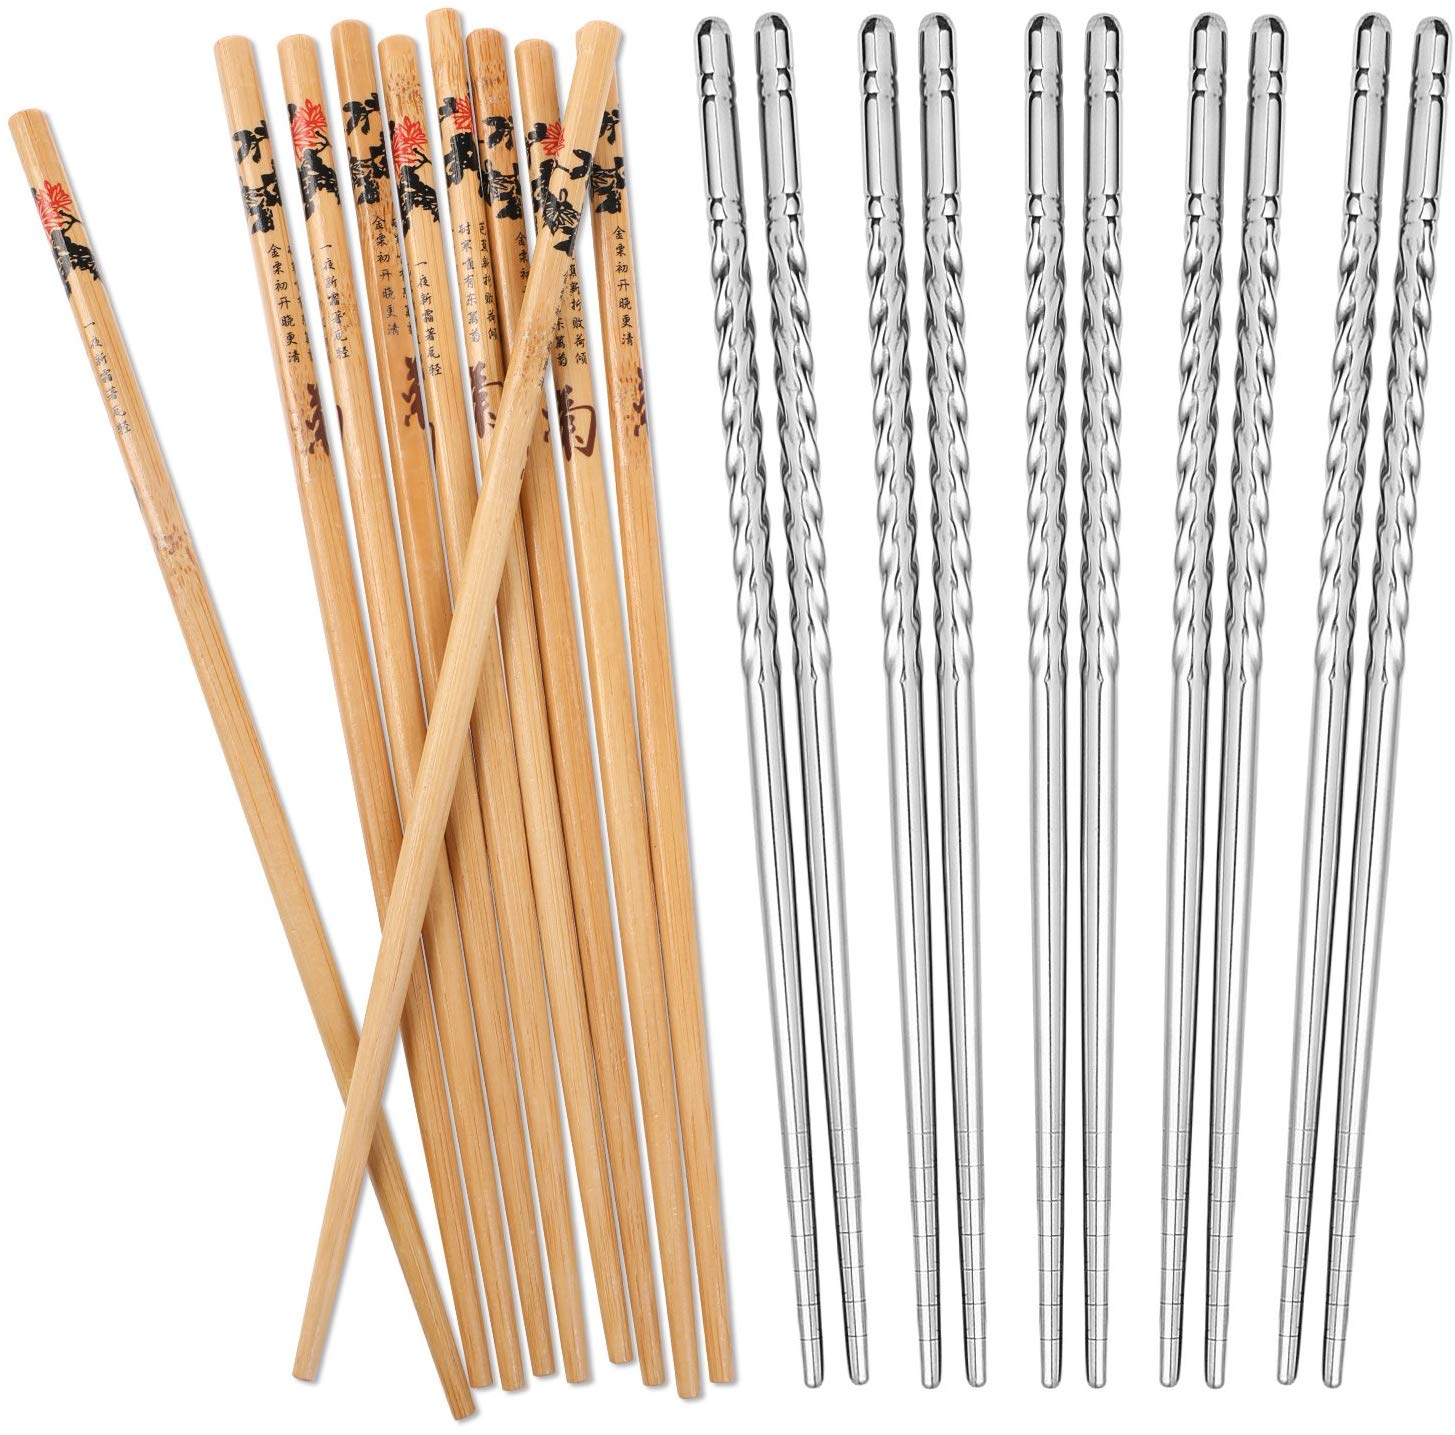 Hiware reusable chopsticks set